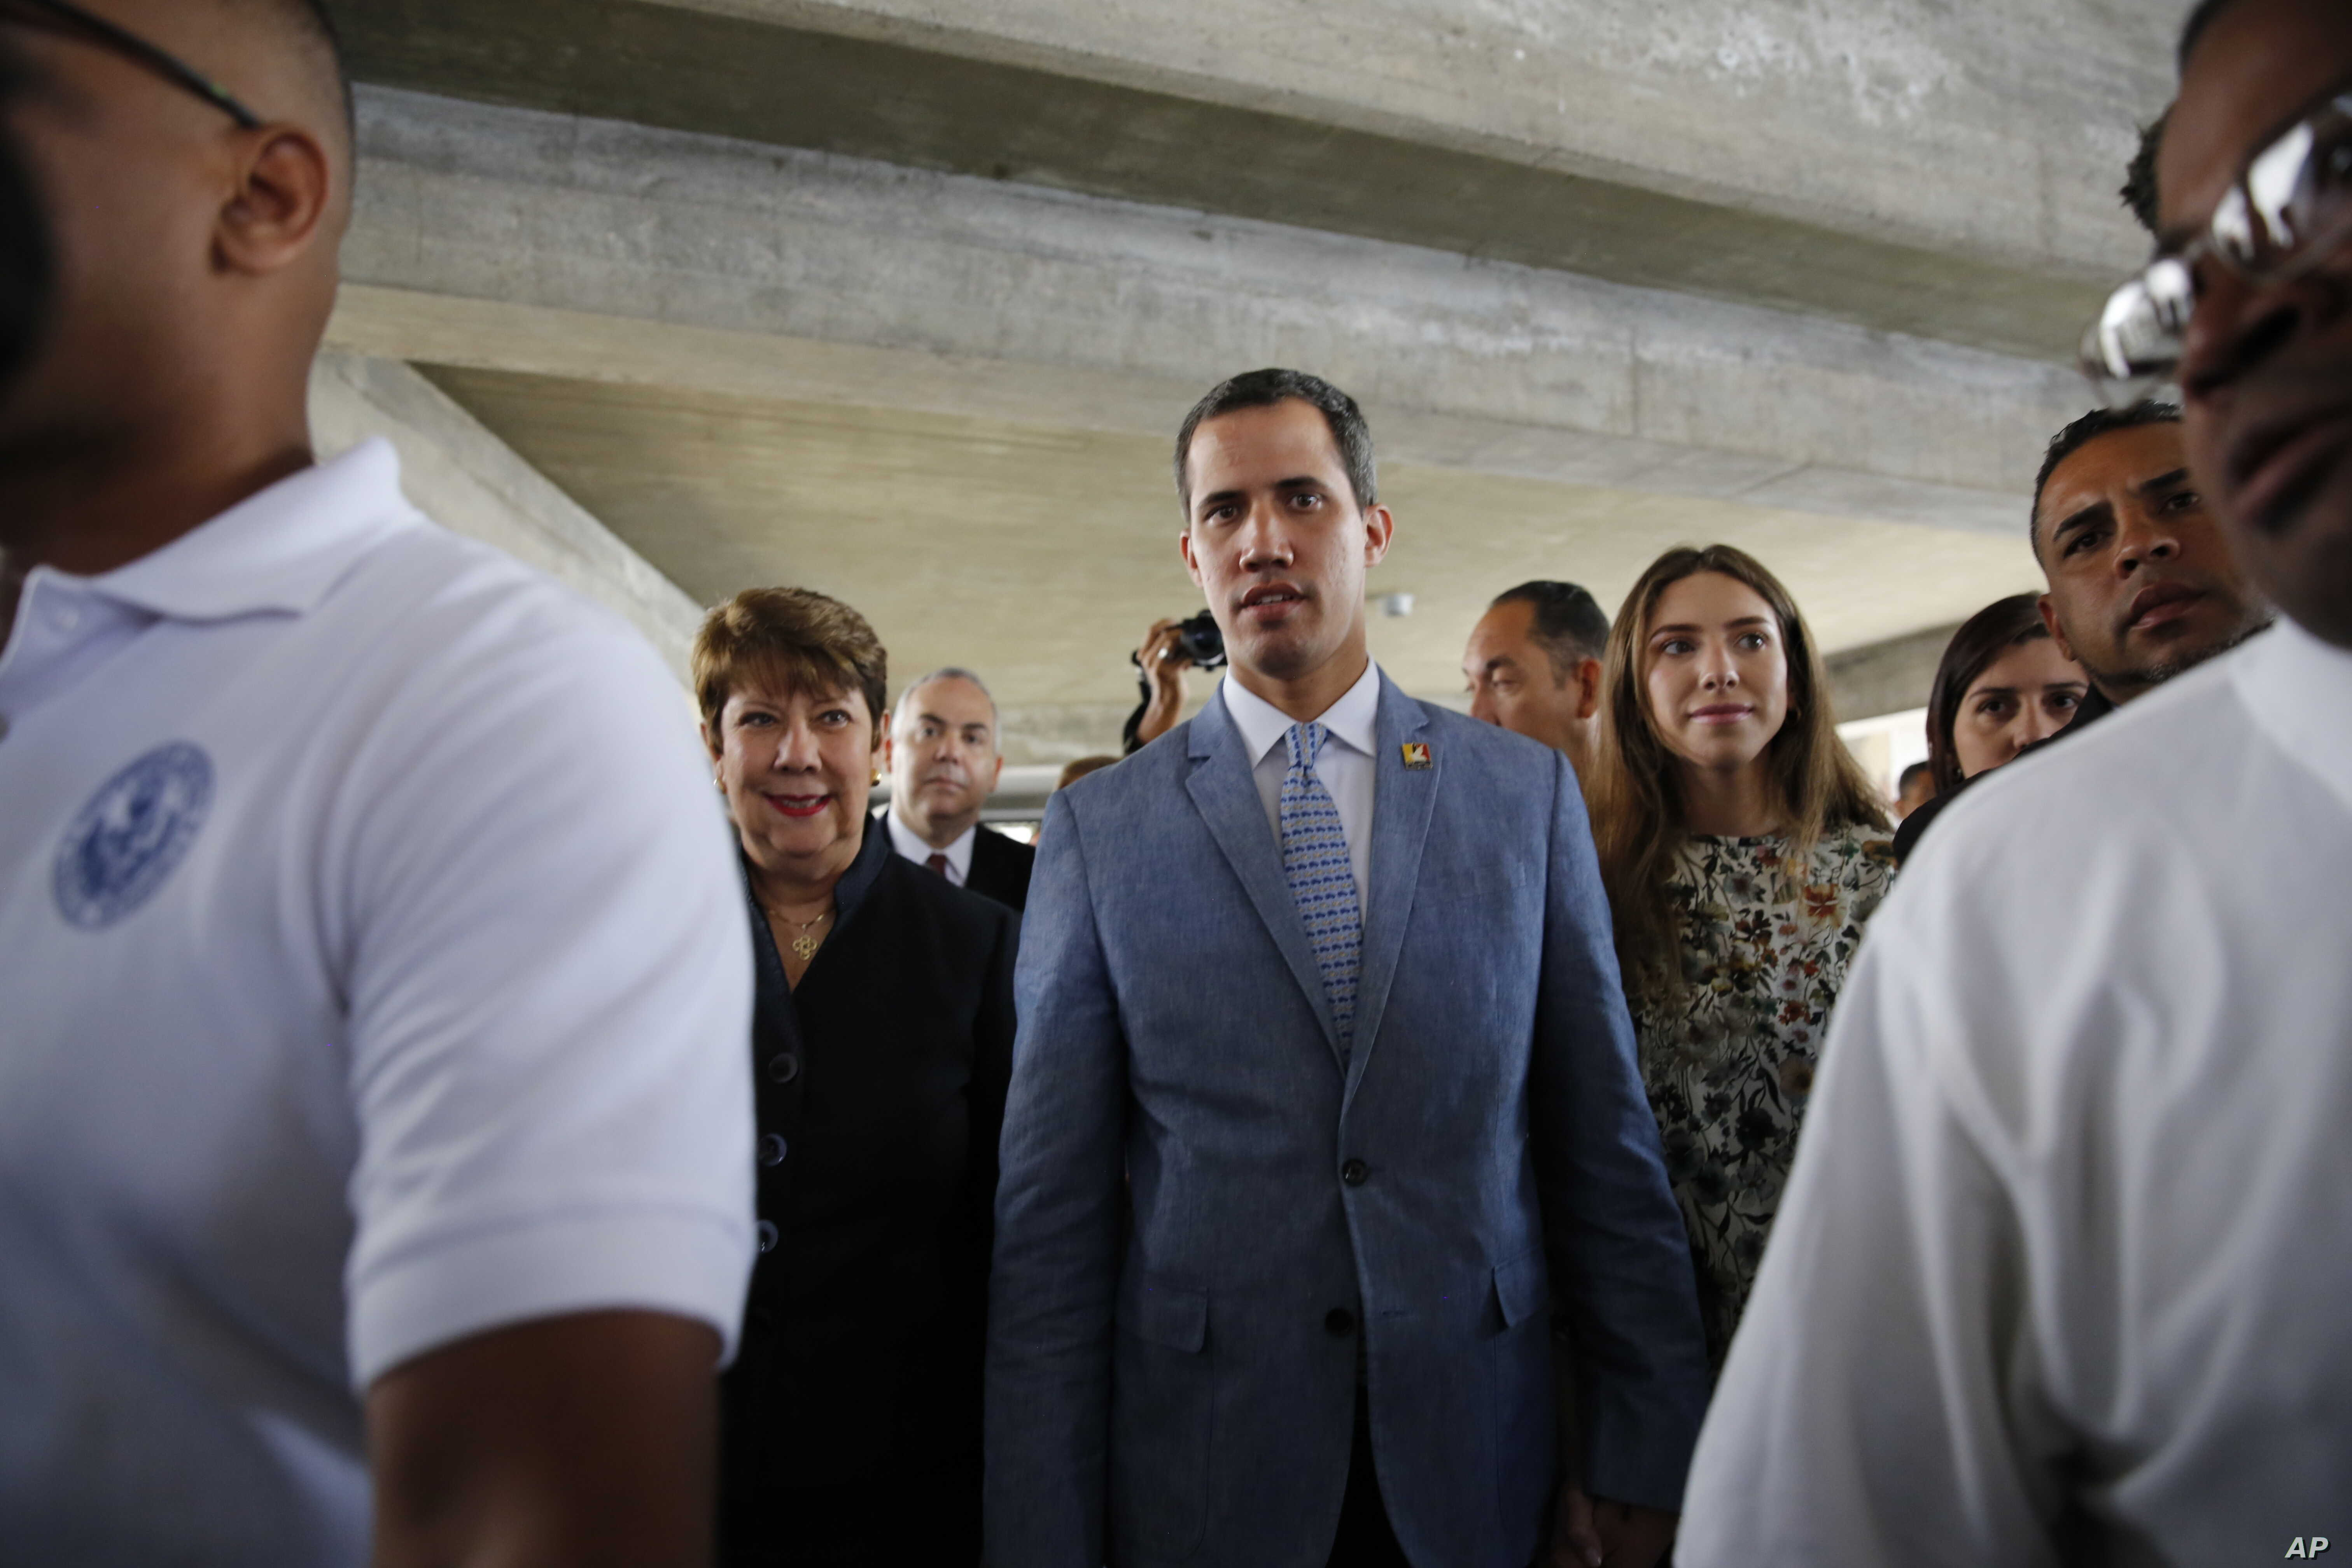 Accompanied by his wife Fabiana Rosales, center right, Venezuela's self proclaimed president Juan Guaido, arrives for a meet with university students at the Central University of Venezuela, in Caracas, Venezuela, Friday, Feb. 9, 2019.